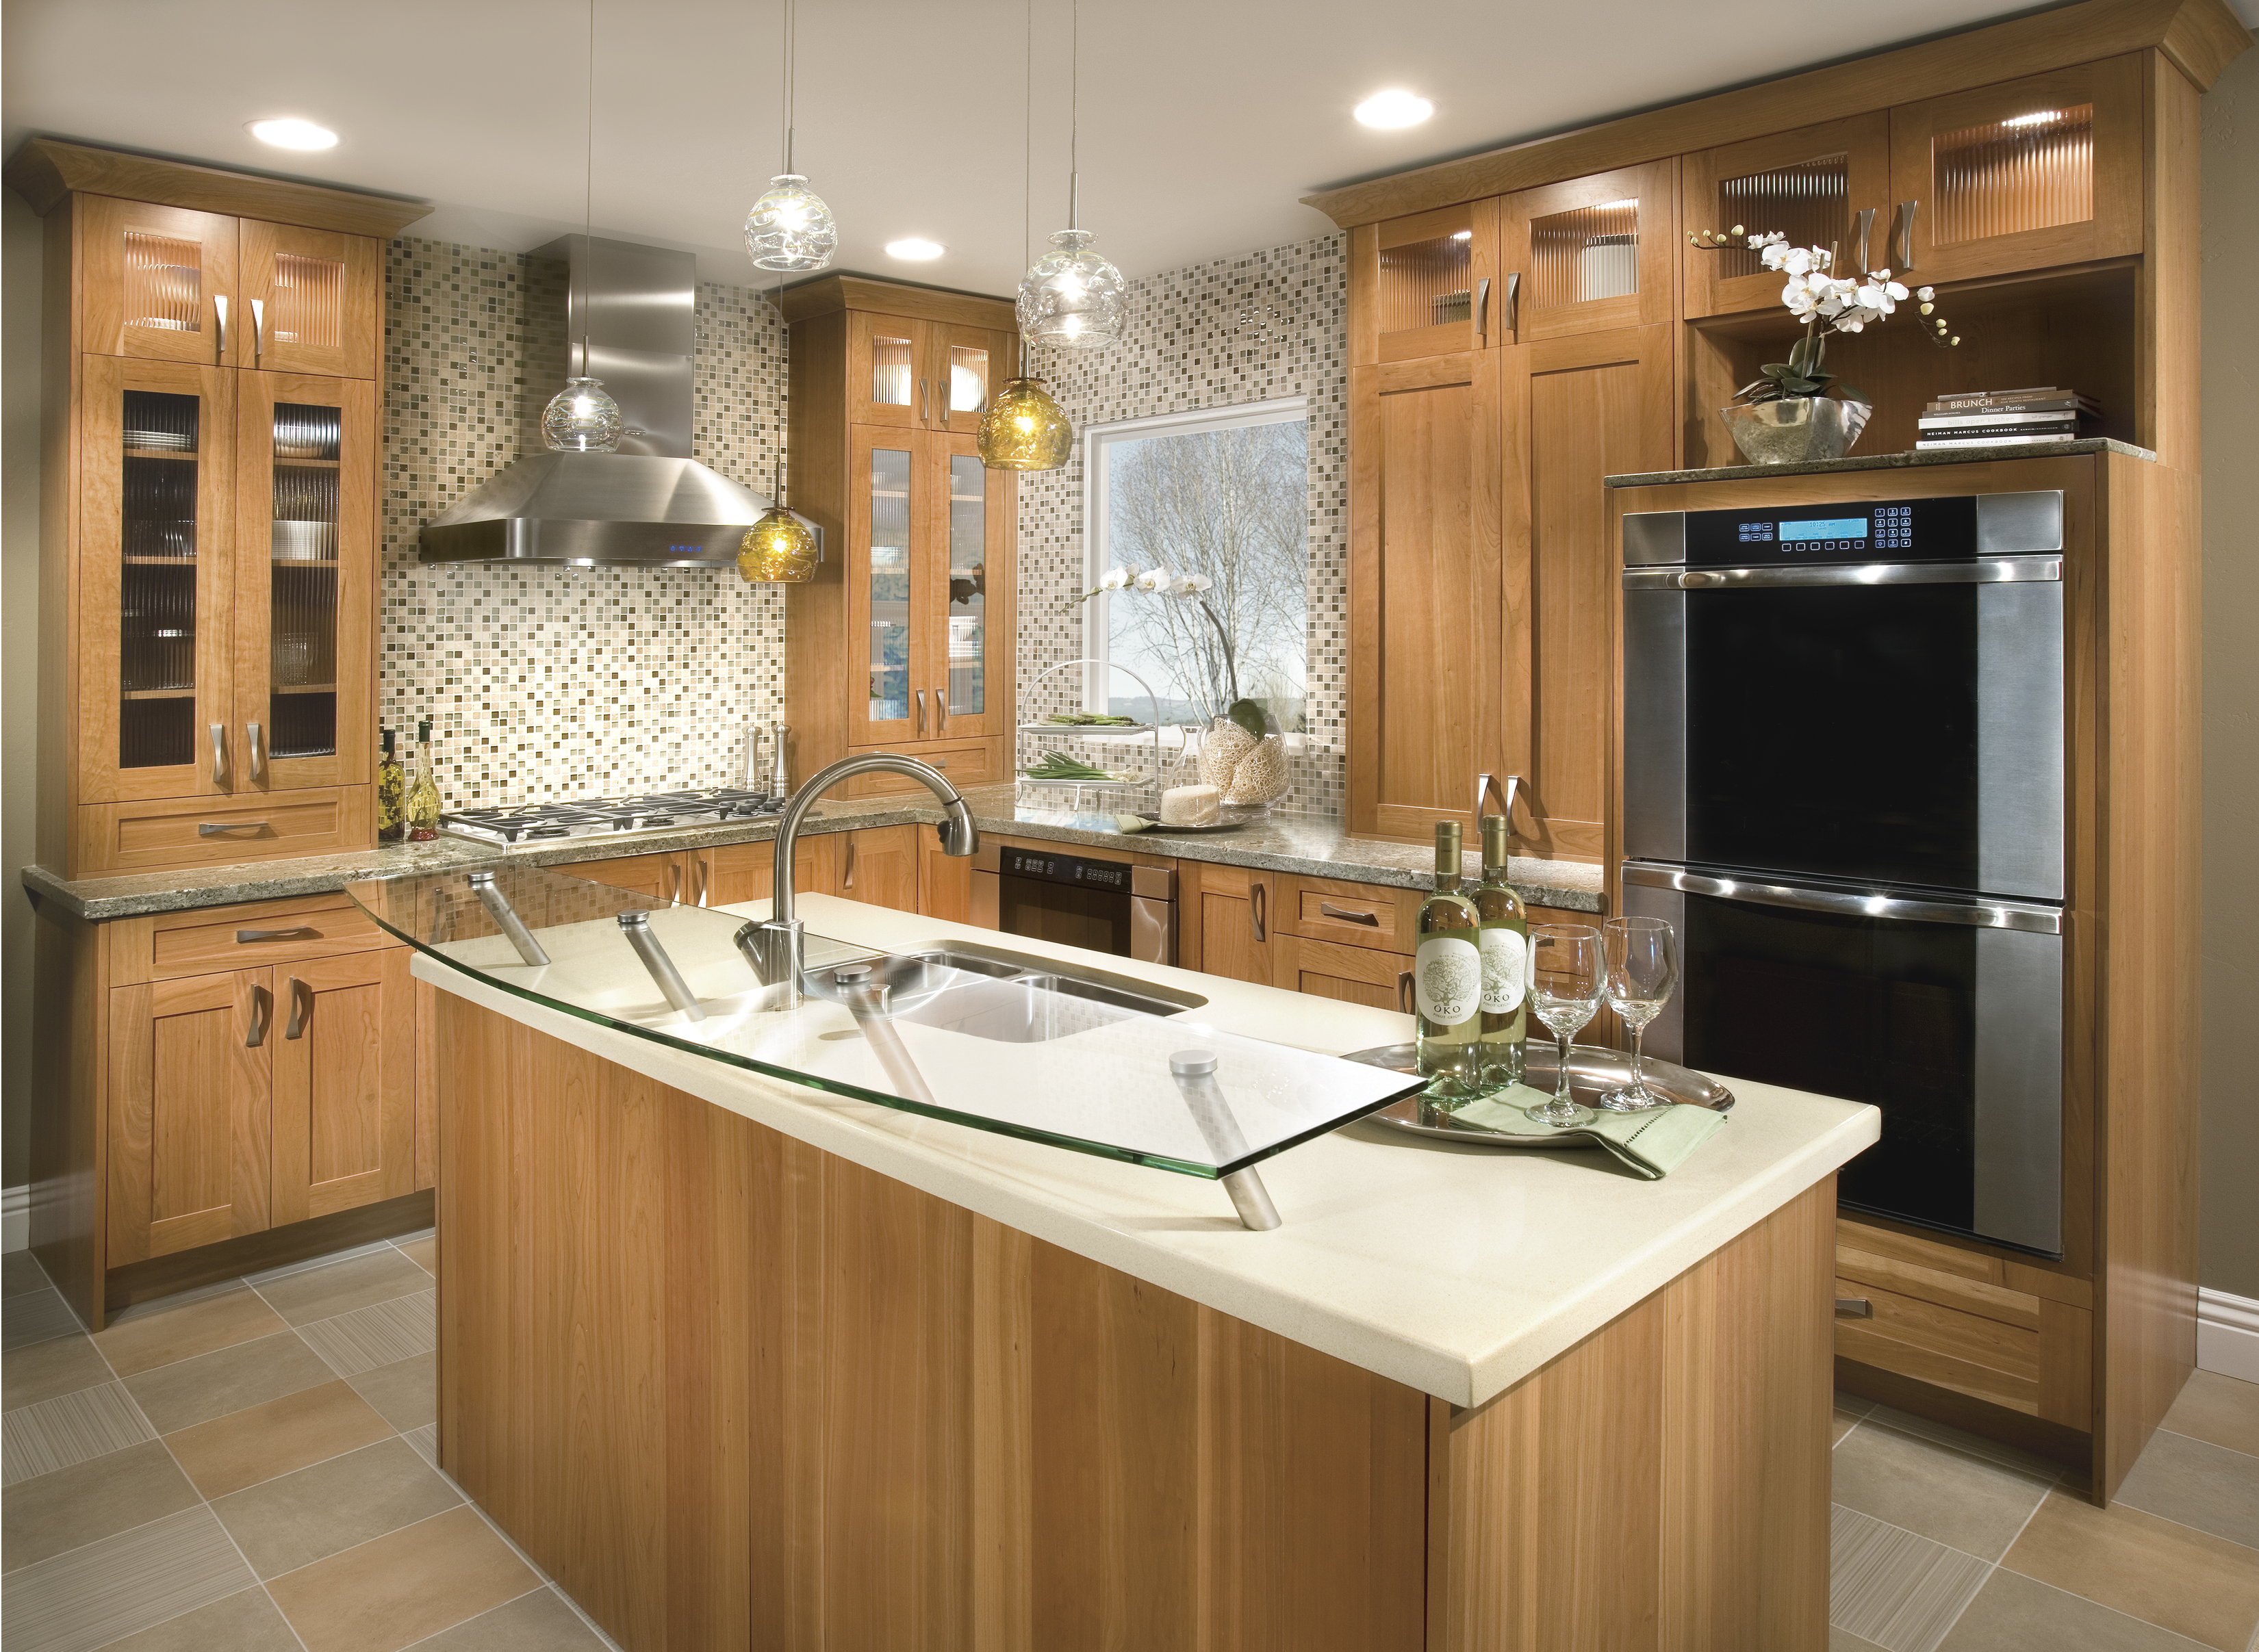 Contemporary Kitchen Cabinets in Cherry